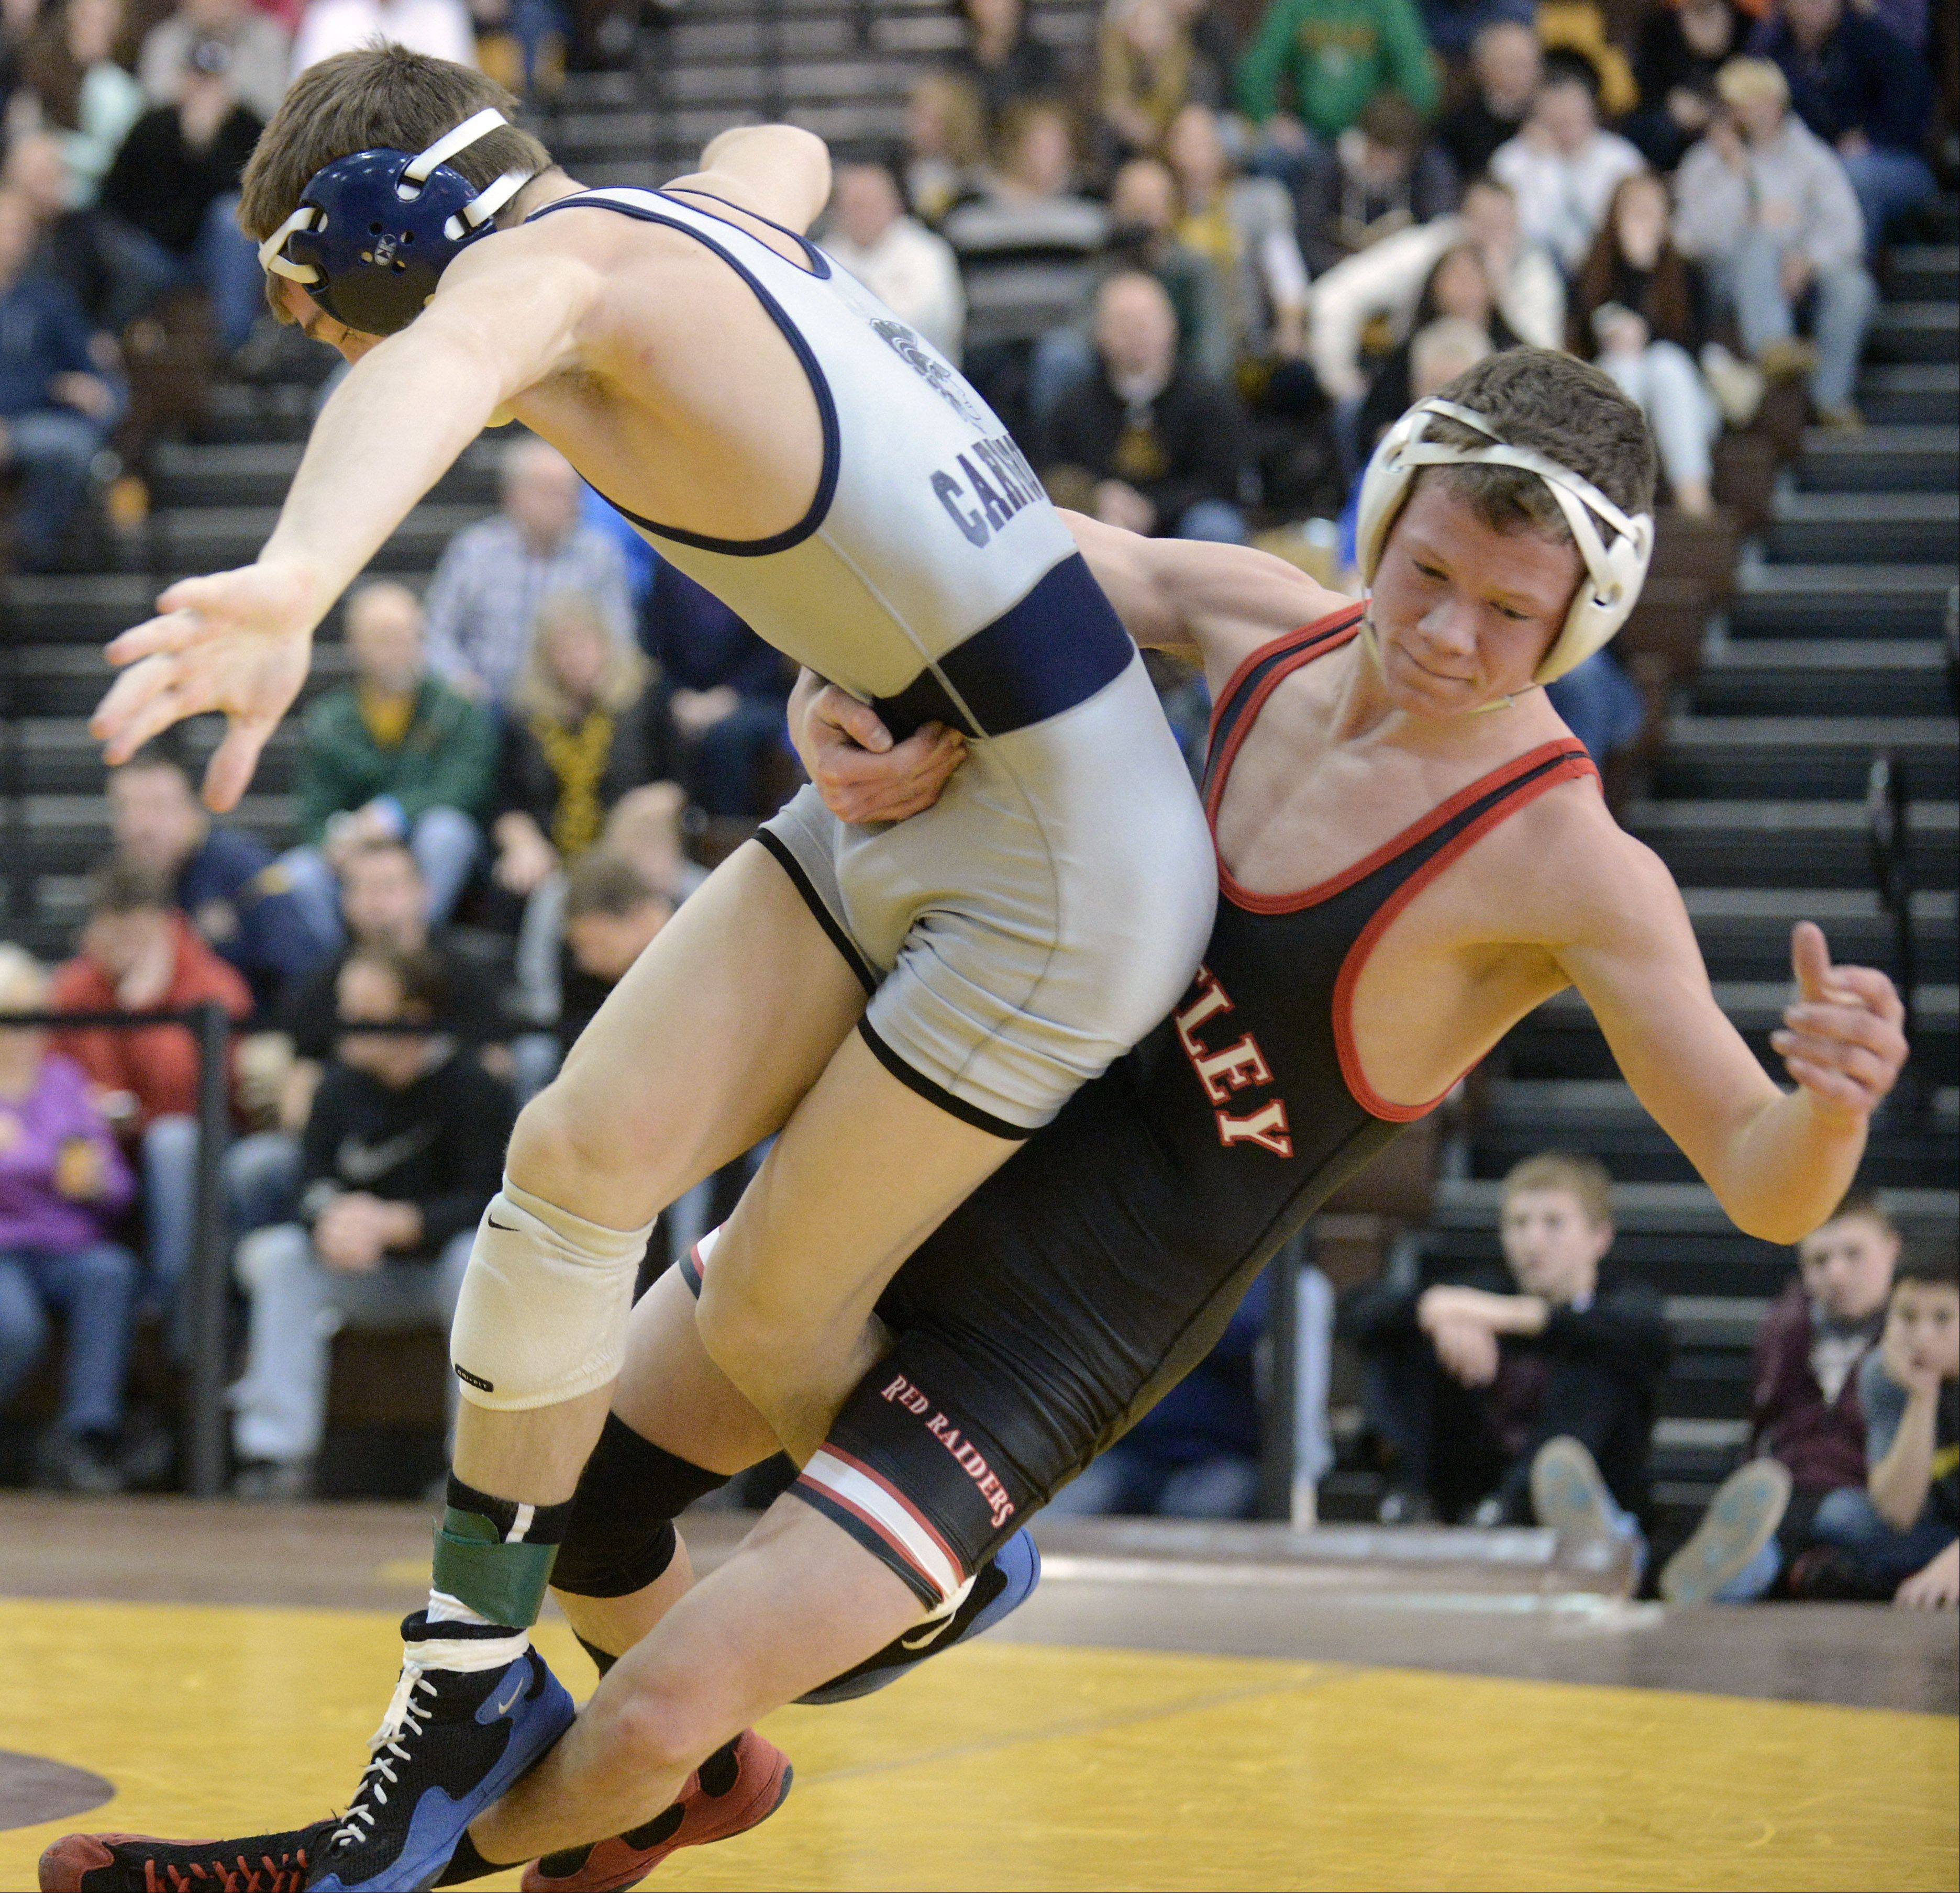 Cary-Grove's Michael Cullen is pulled down to the mat by Huntley's Zach Stenger in the 113-pound championship match at the Fox Valley Conference finals on Saturday. Cullen took the win.